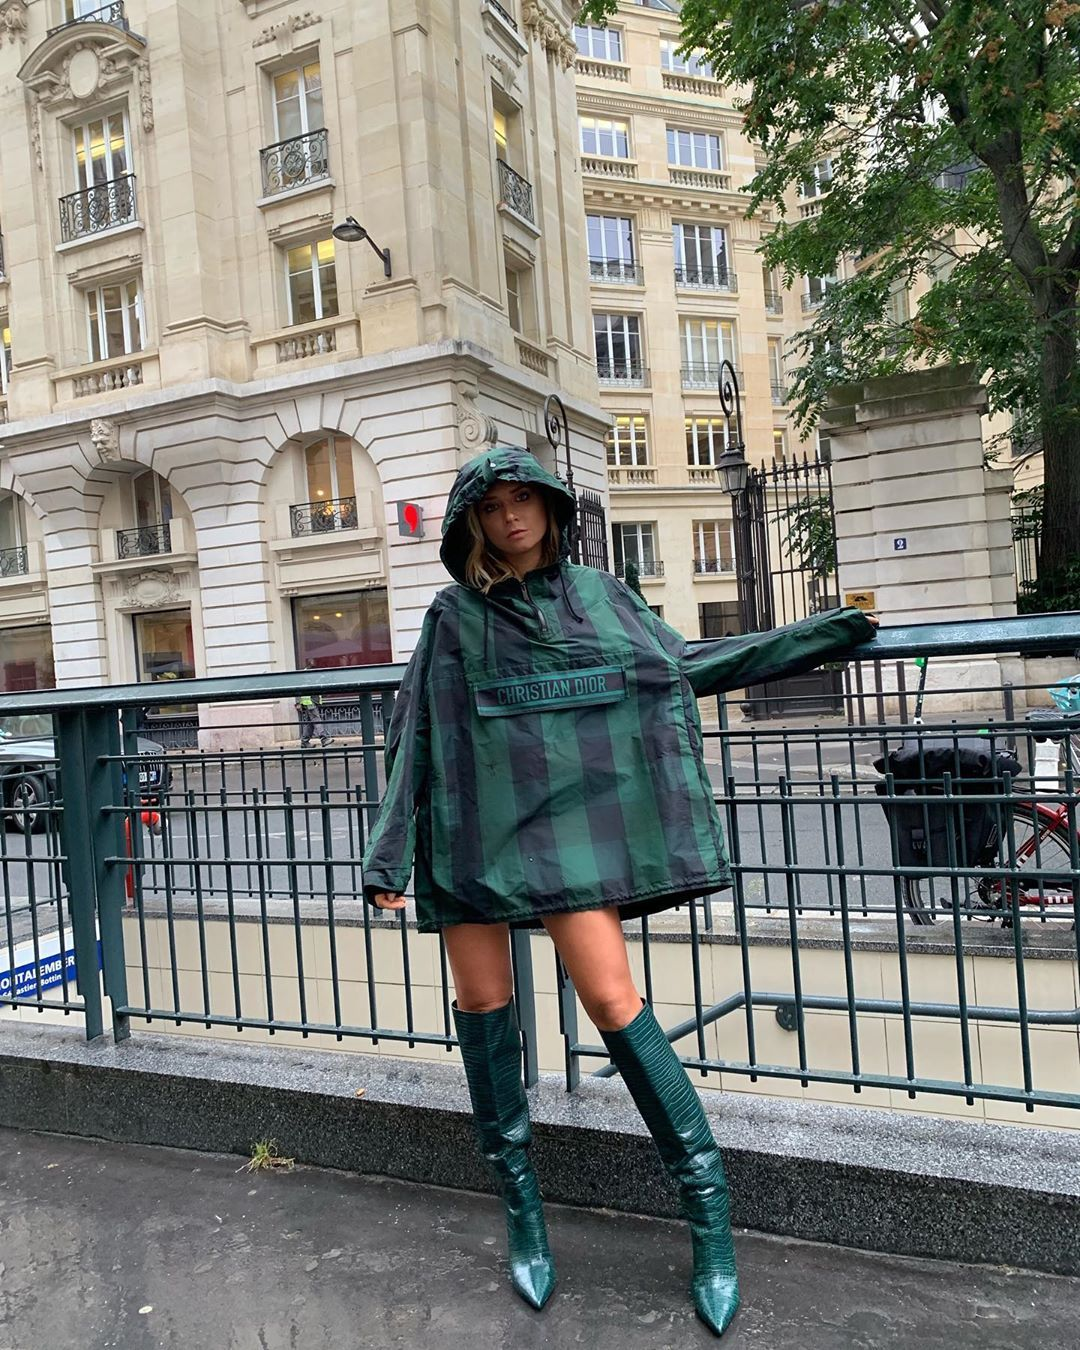 veronica-ferraro-jimmy-choo-Mavis-85-green-leather-knee-high-boots-paris-street-style